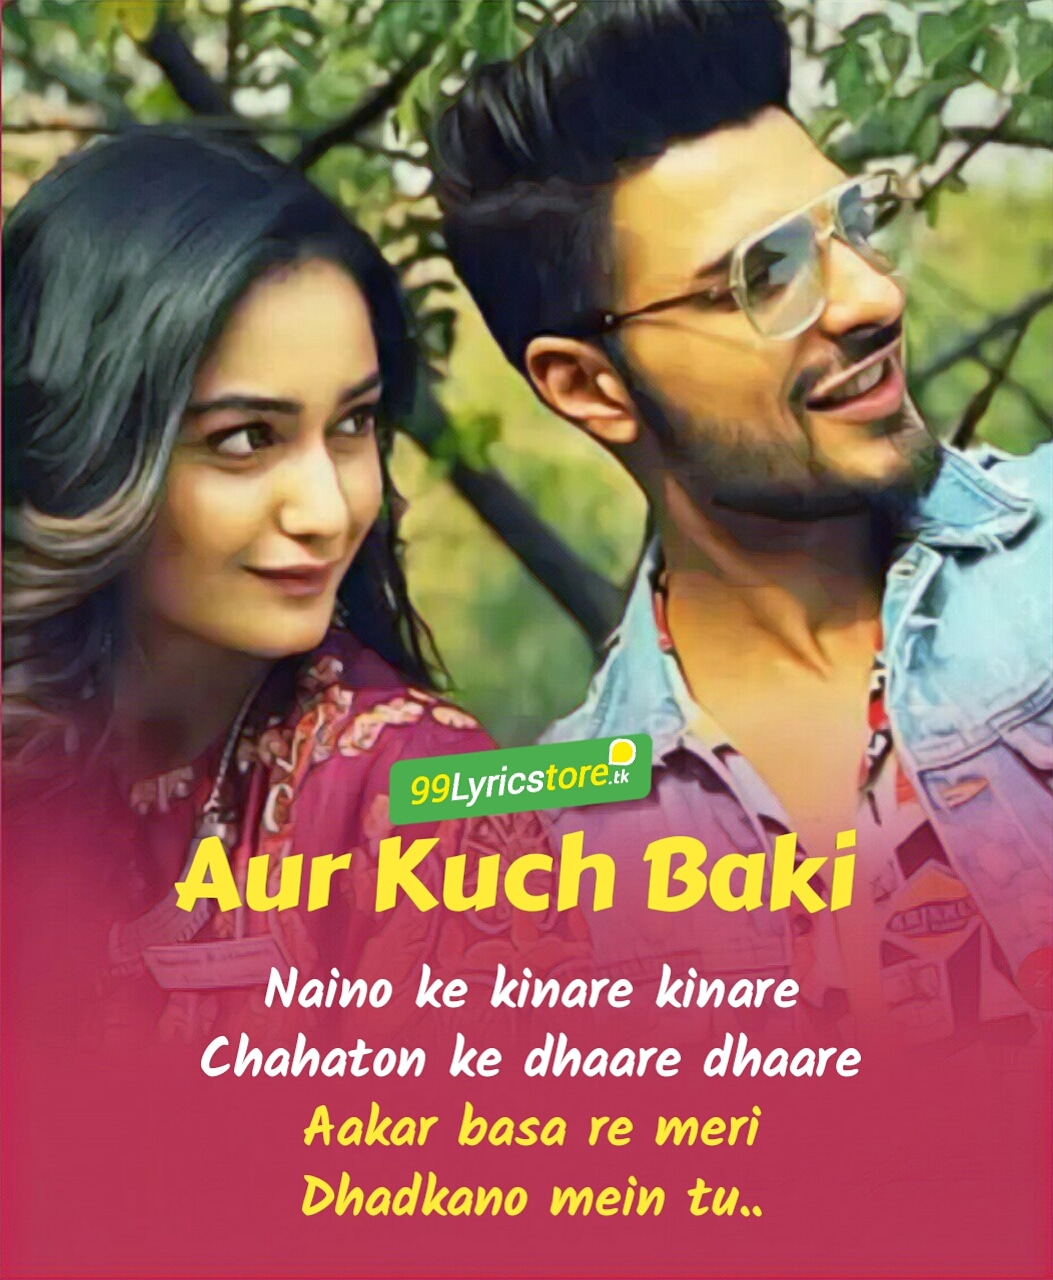 Latest beautiful love song 'Aur Kuch Baaki' beautifully sung by 'Yasser Desai'. Music directed by Harshit Saxsena and Lyrics written by Dev Narayan. Music Label is Zee Music Company